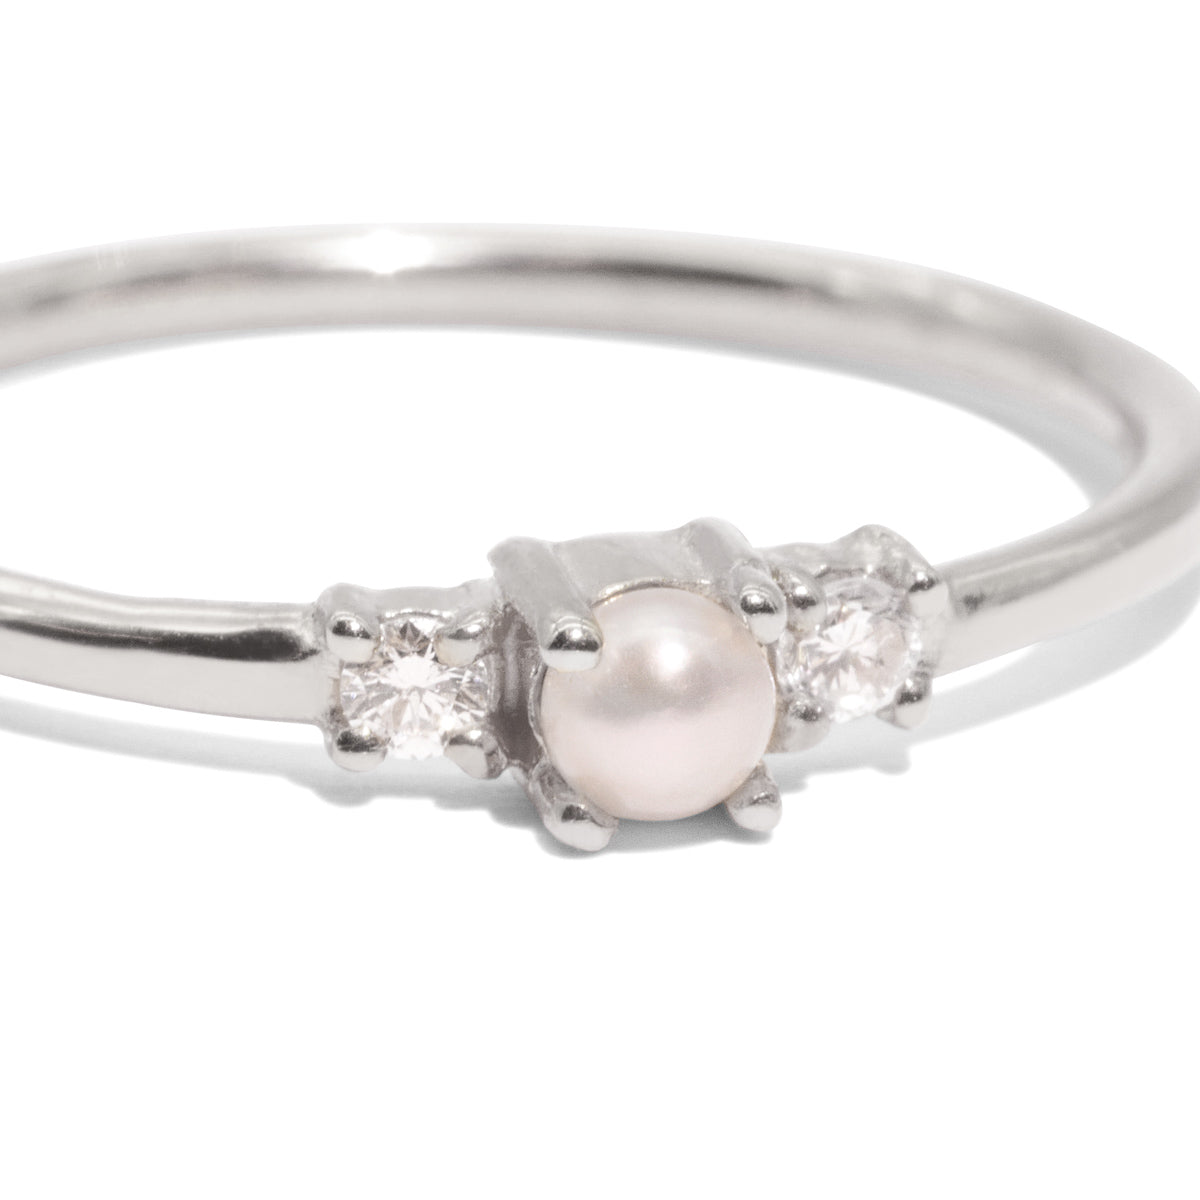 The Silver Diamond & Pearl Trio Ring